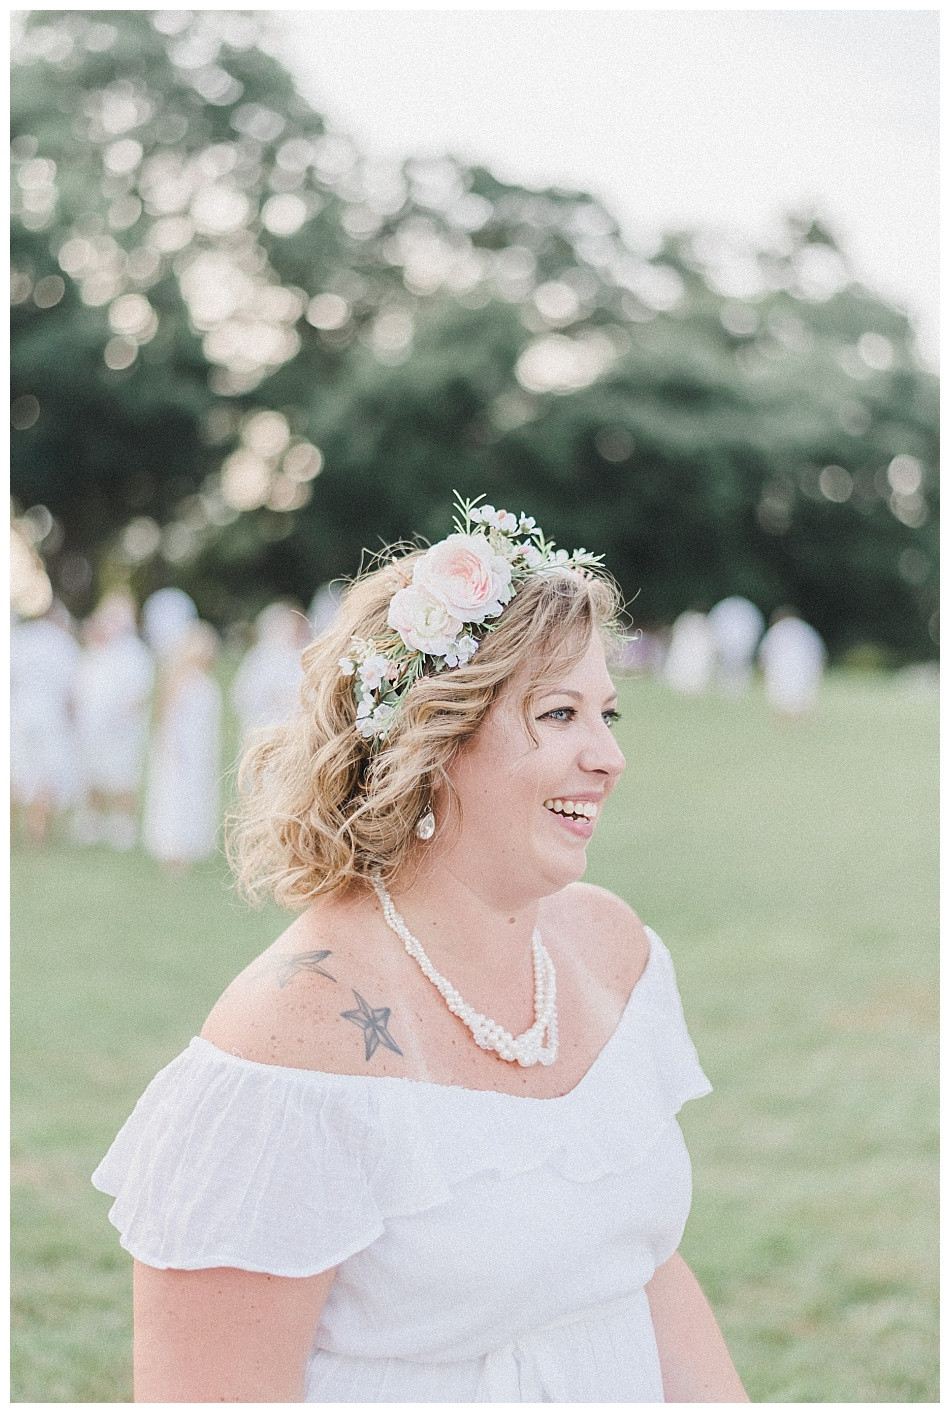 White dress, necklace, flower crown, laughing woman. Streamers released, portrait of young woman, large white balloons, red lipstick, flowers in her hair, white dress.  Fete en Blanc (Party in White) Lancaster 2019 at Longs Park by Angela Weiler Photography - Fine Art Wedding and Lifestyle Photographer in Lancaster Pennsylvania.